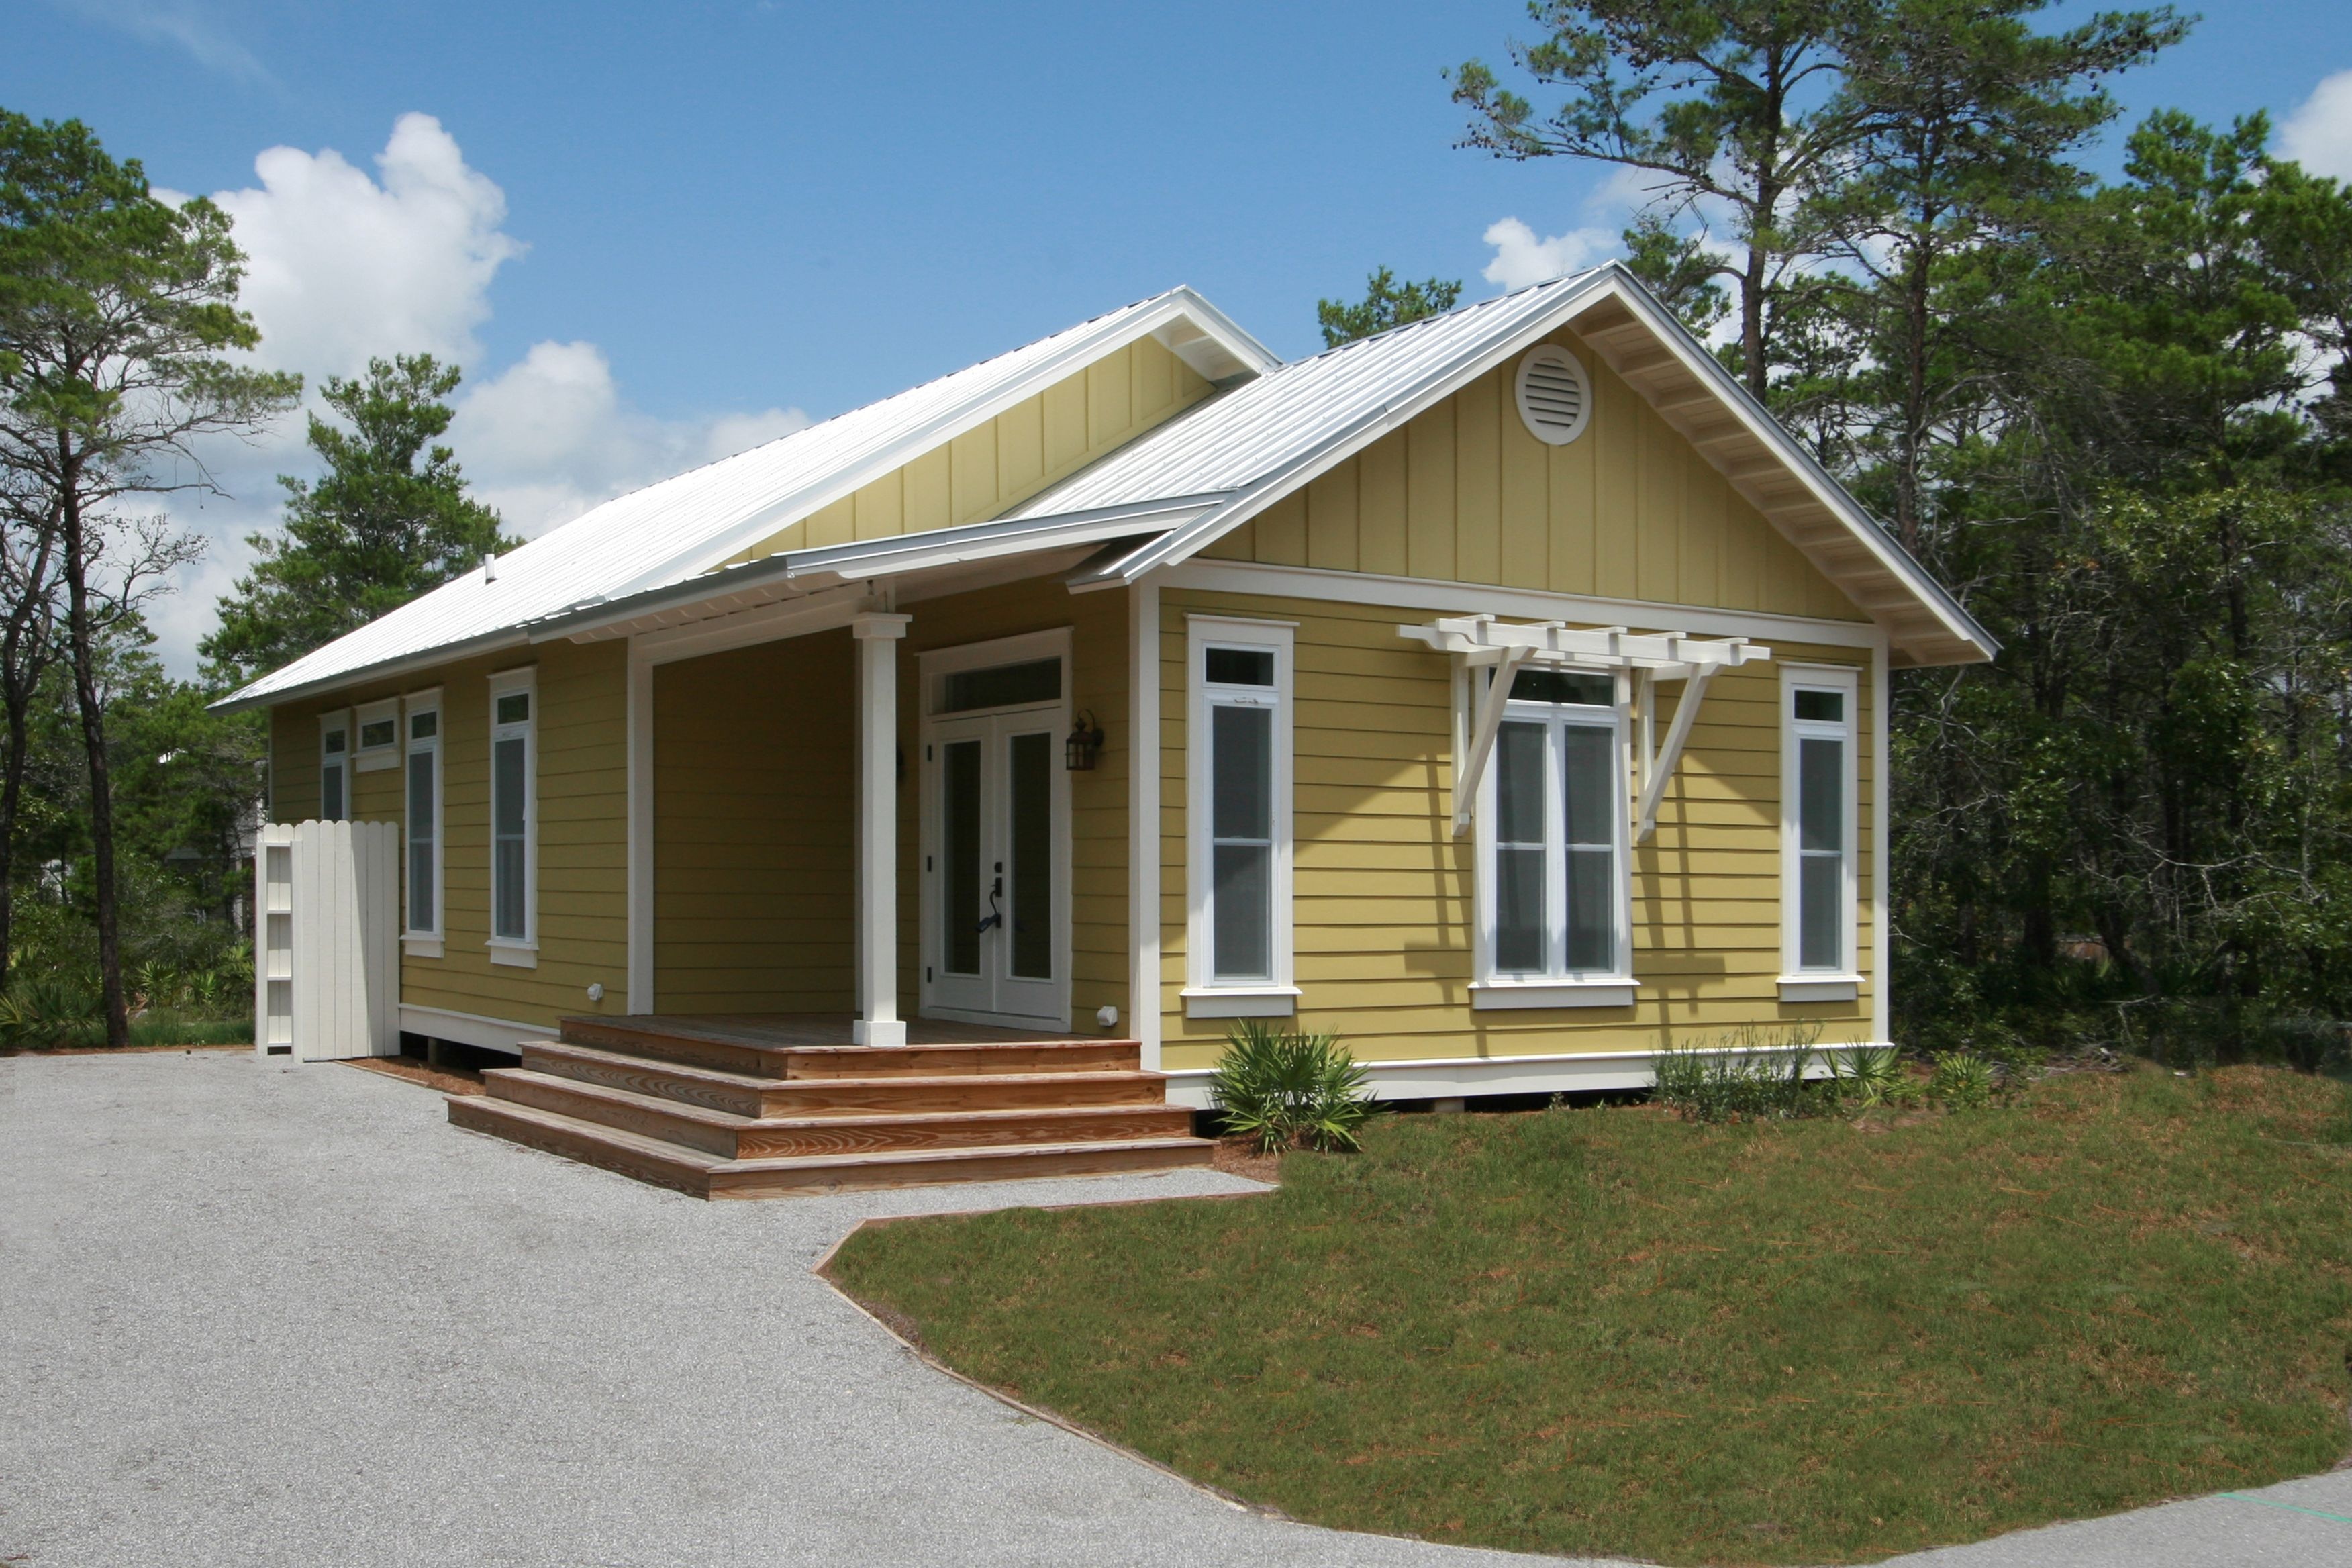 Custom ranch coastal modular home design by Nationwide ...